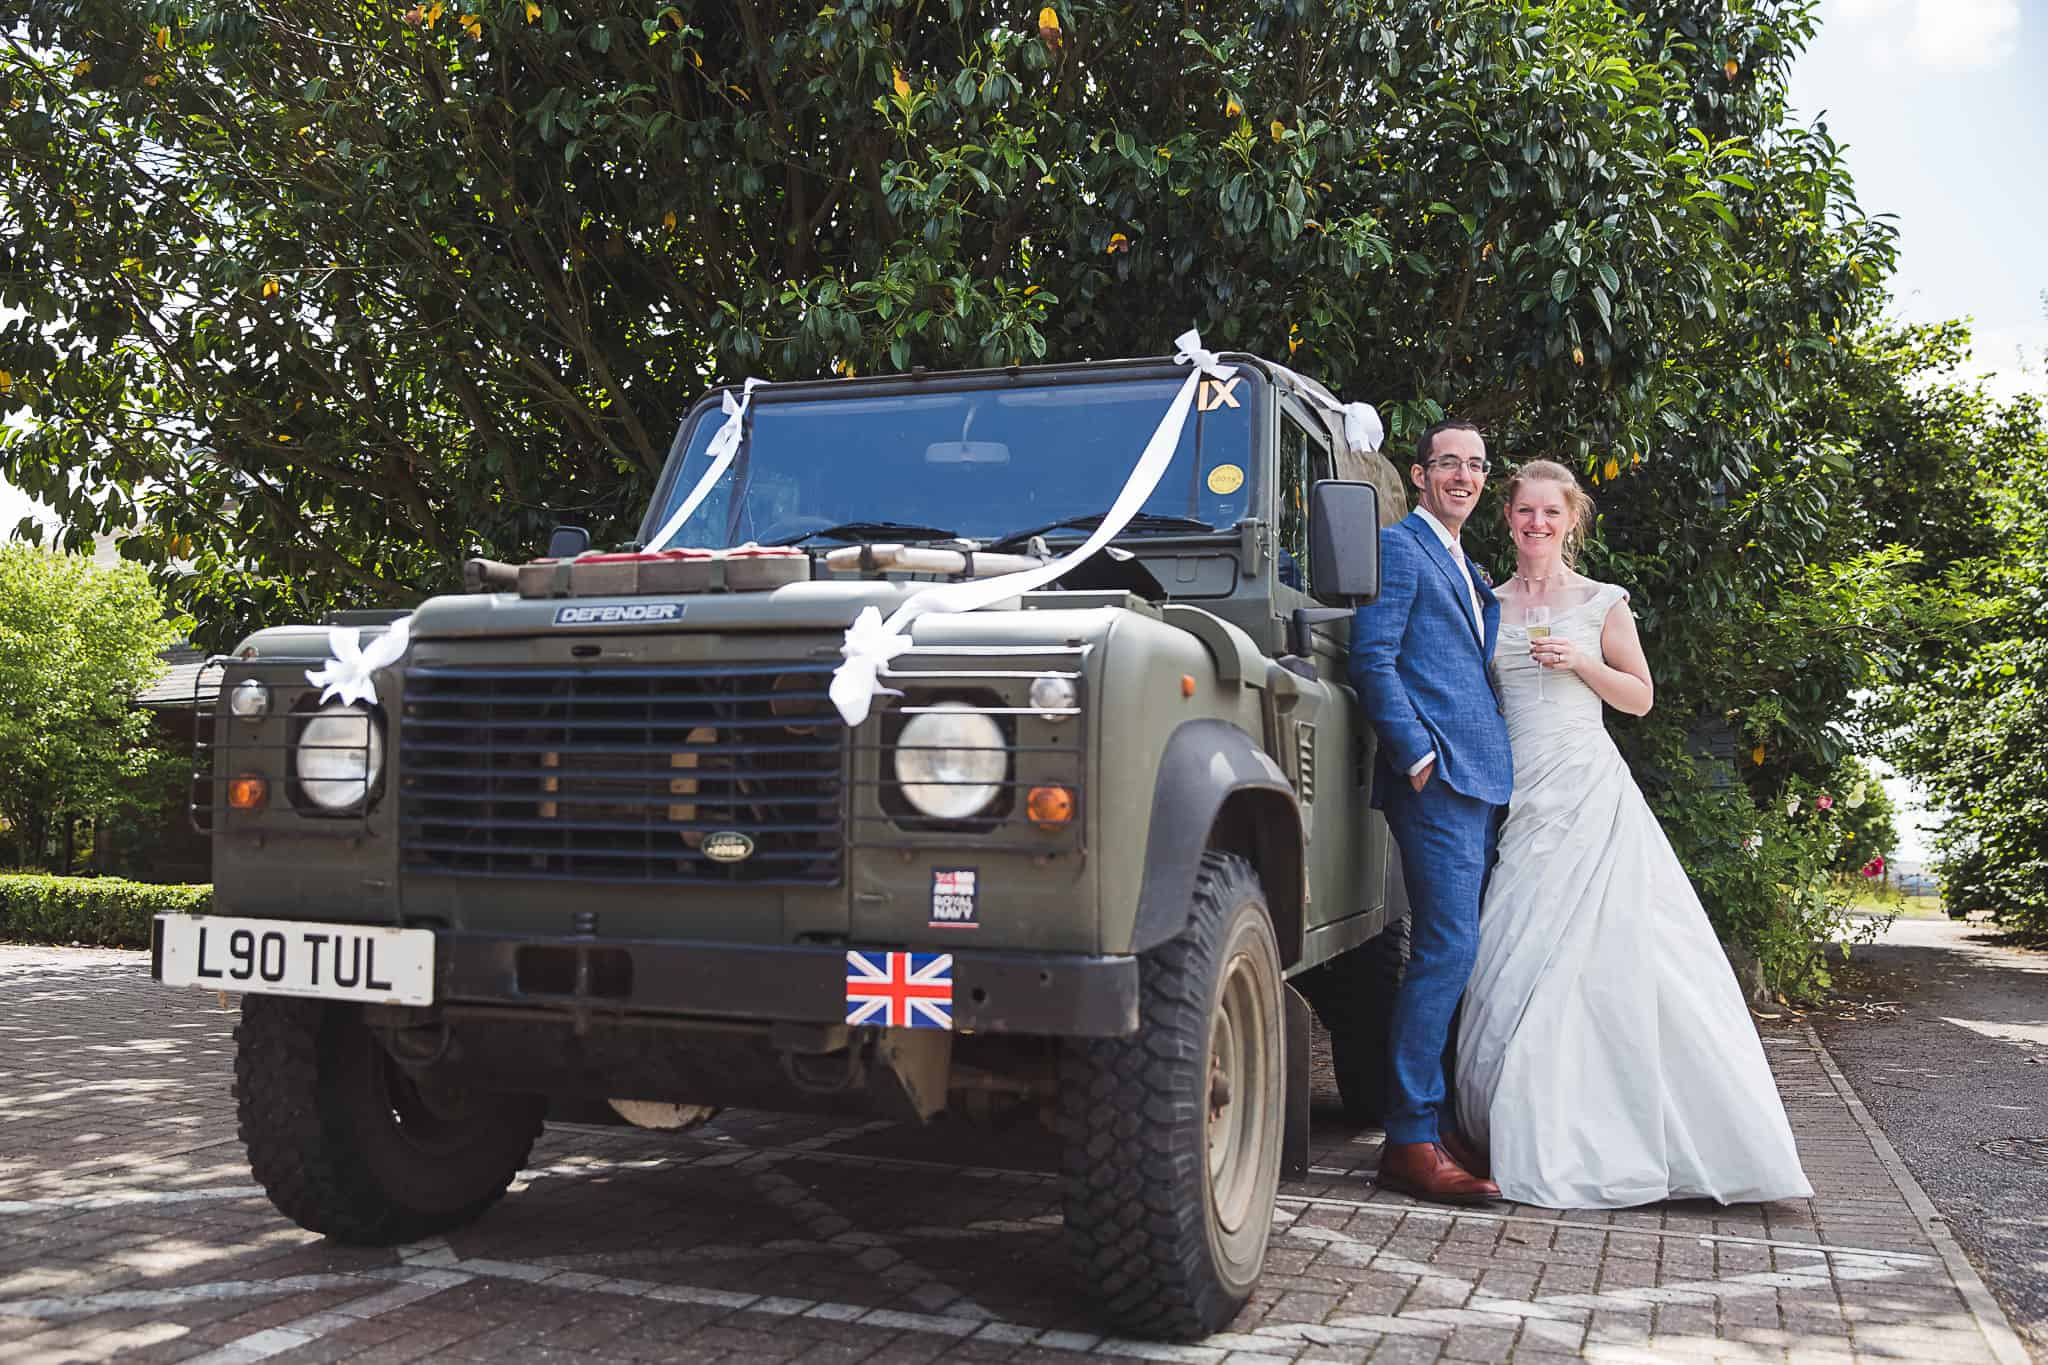 Fison Barn Wedding defender Earth Trust wittenham clumps